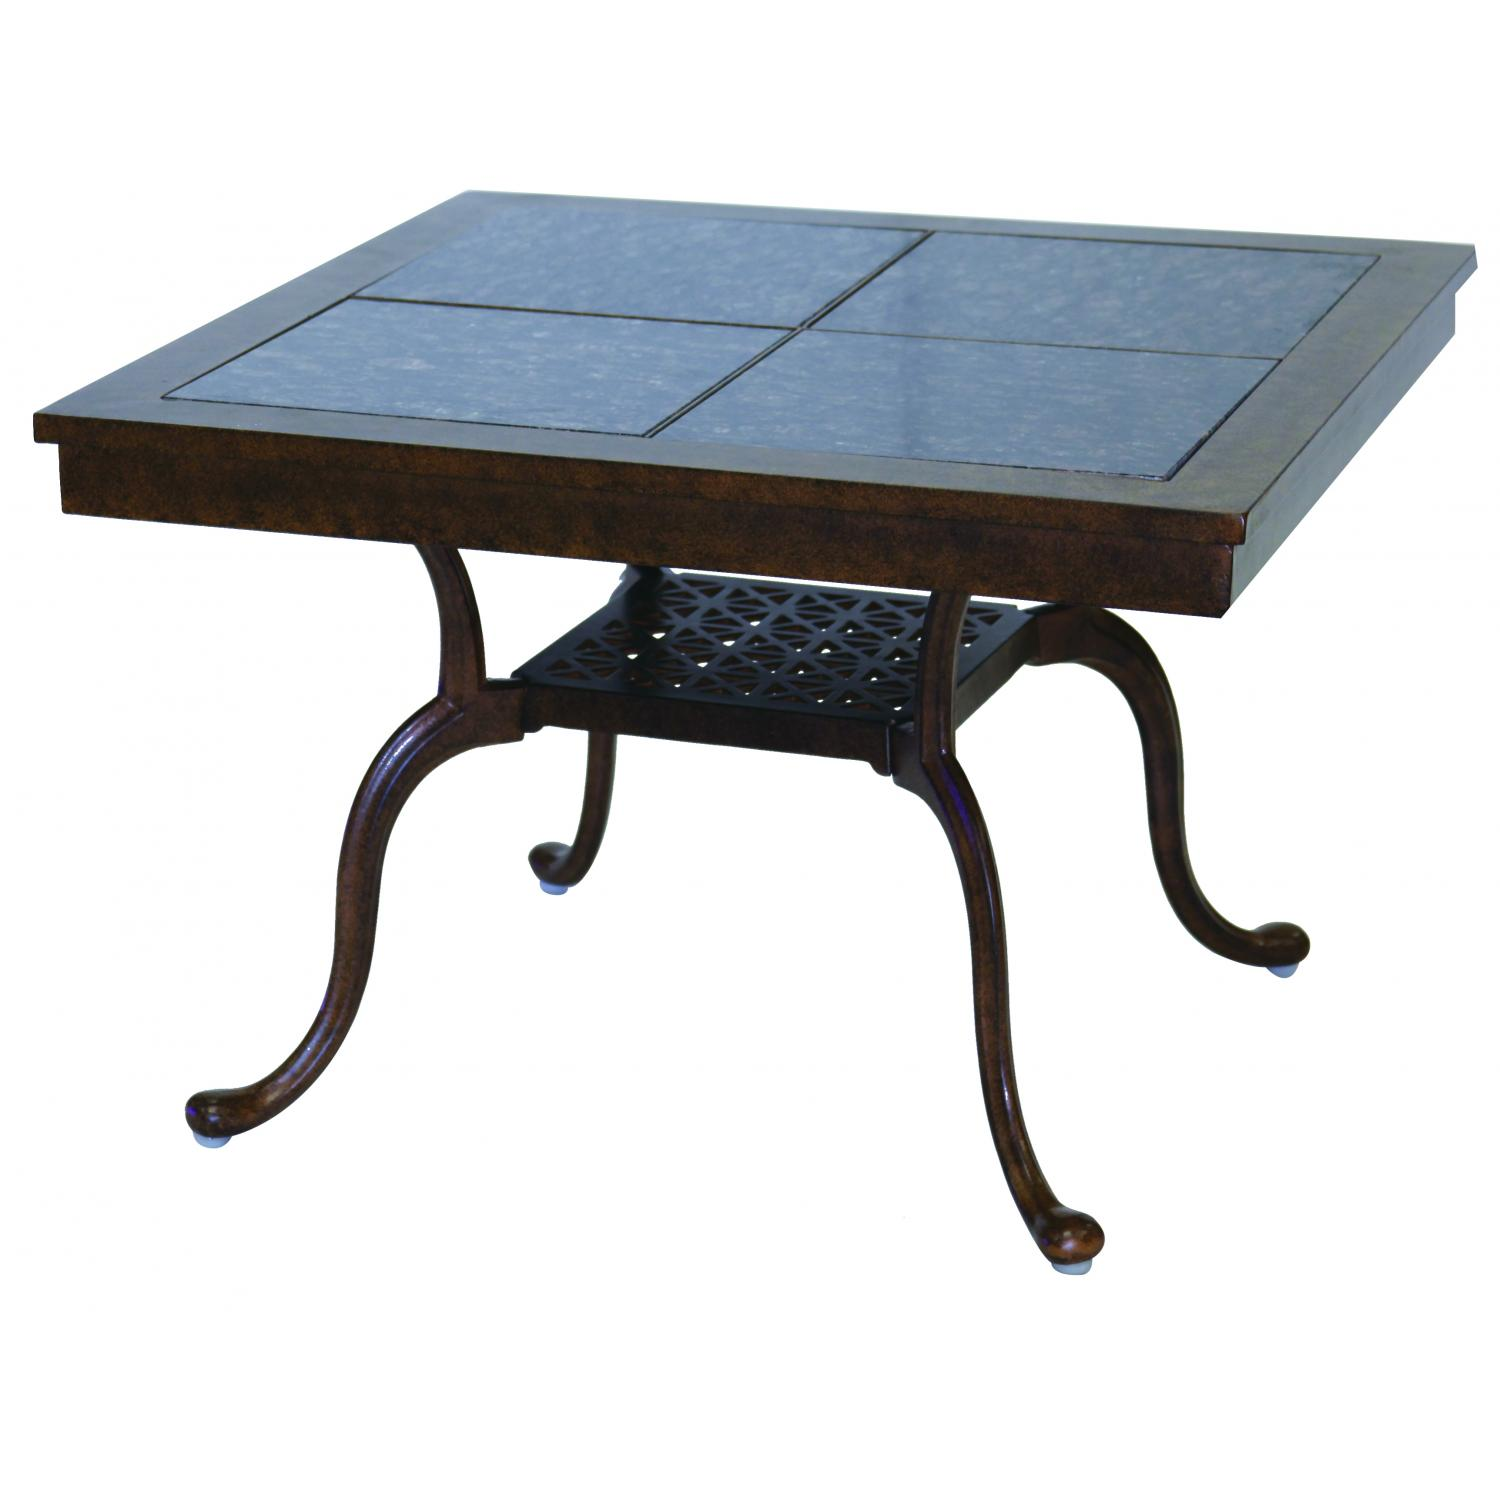 Darlee Series 77 Cast Aluminum Patio End Table With Granite Top - Antique Bronze / Brown Granite Tile at Sears.com